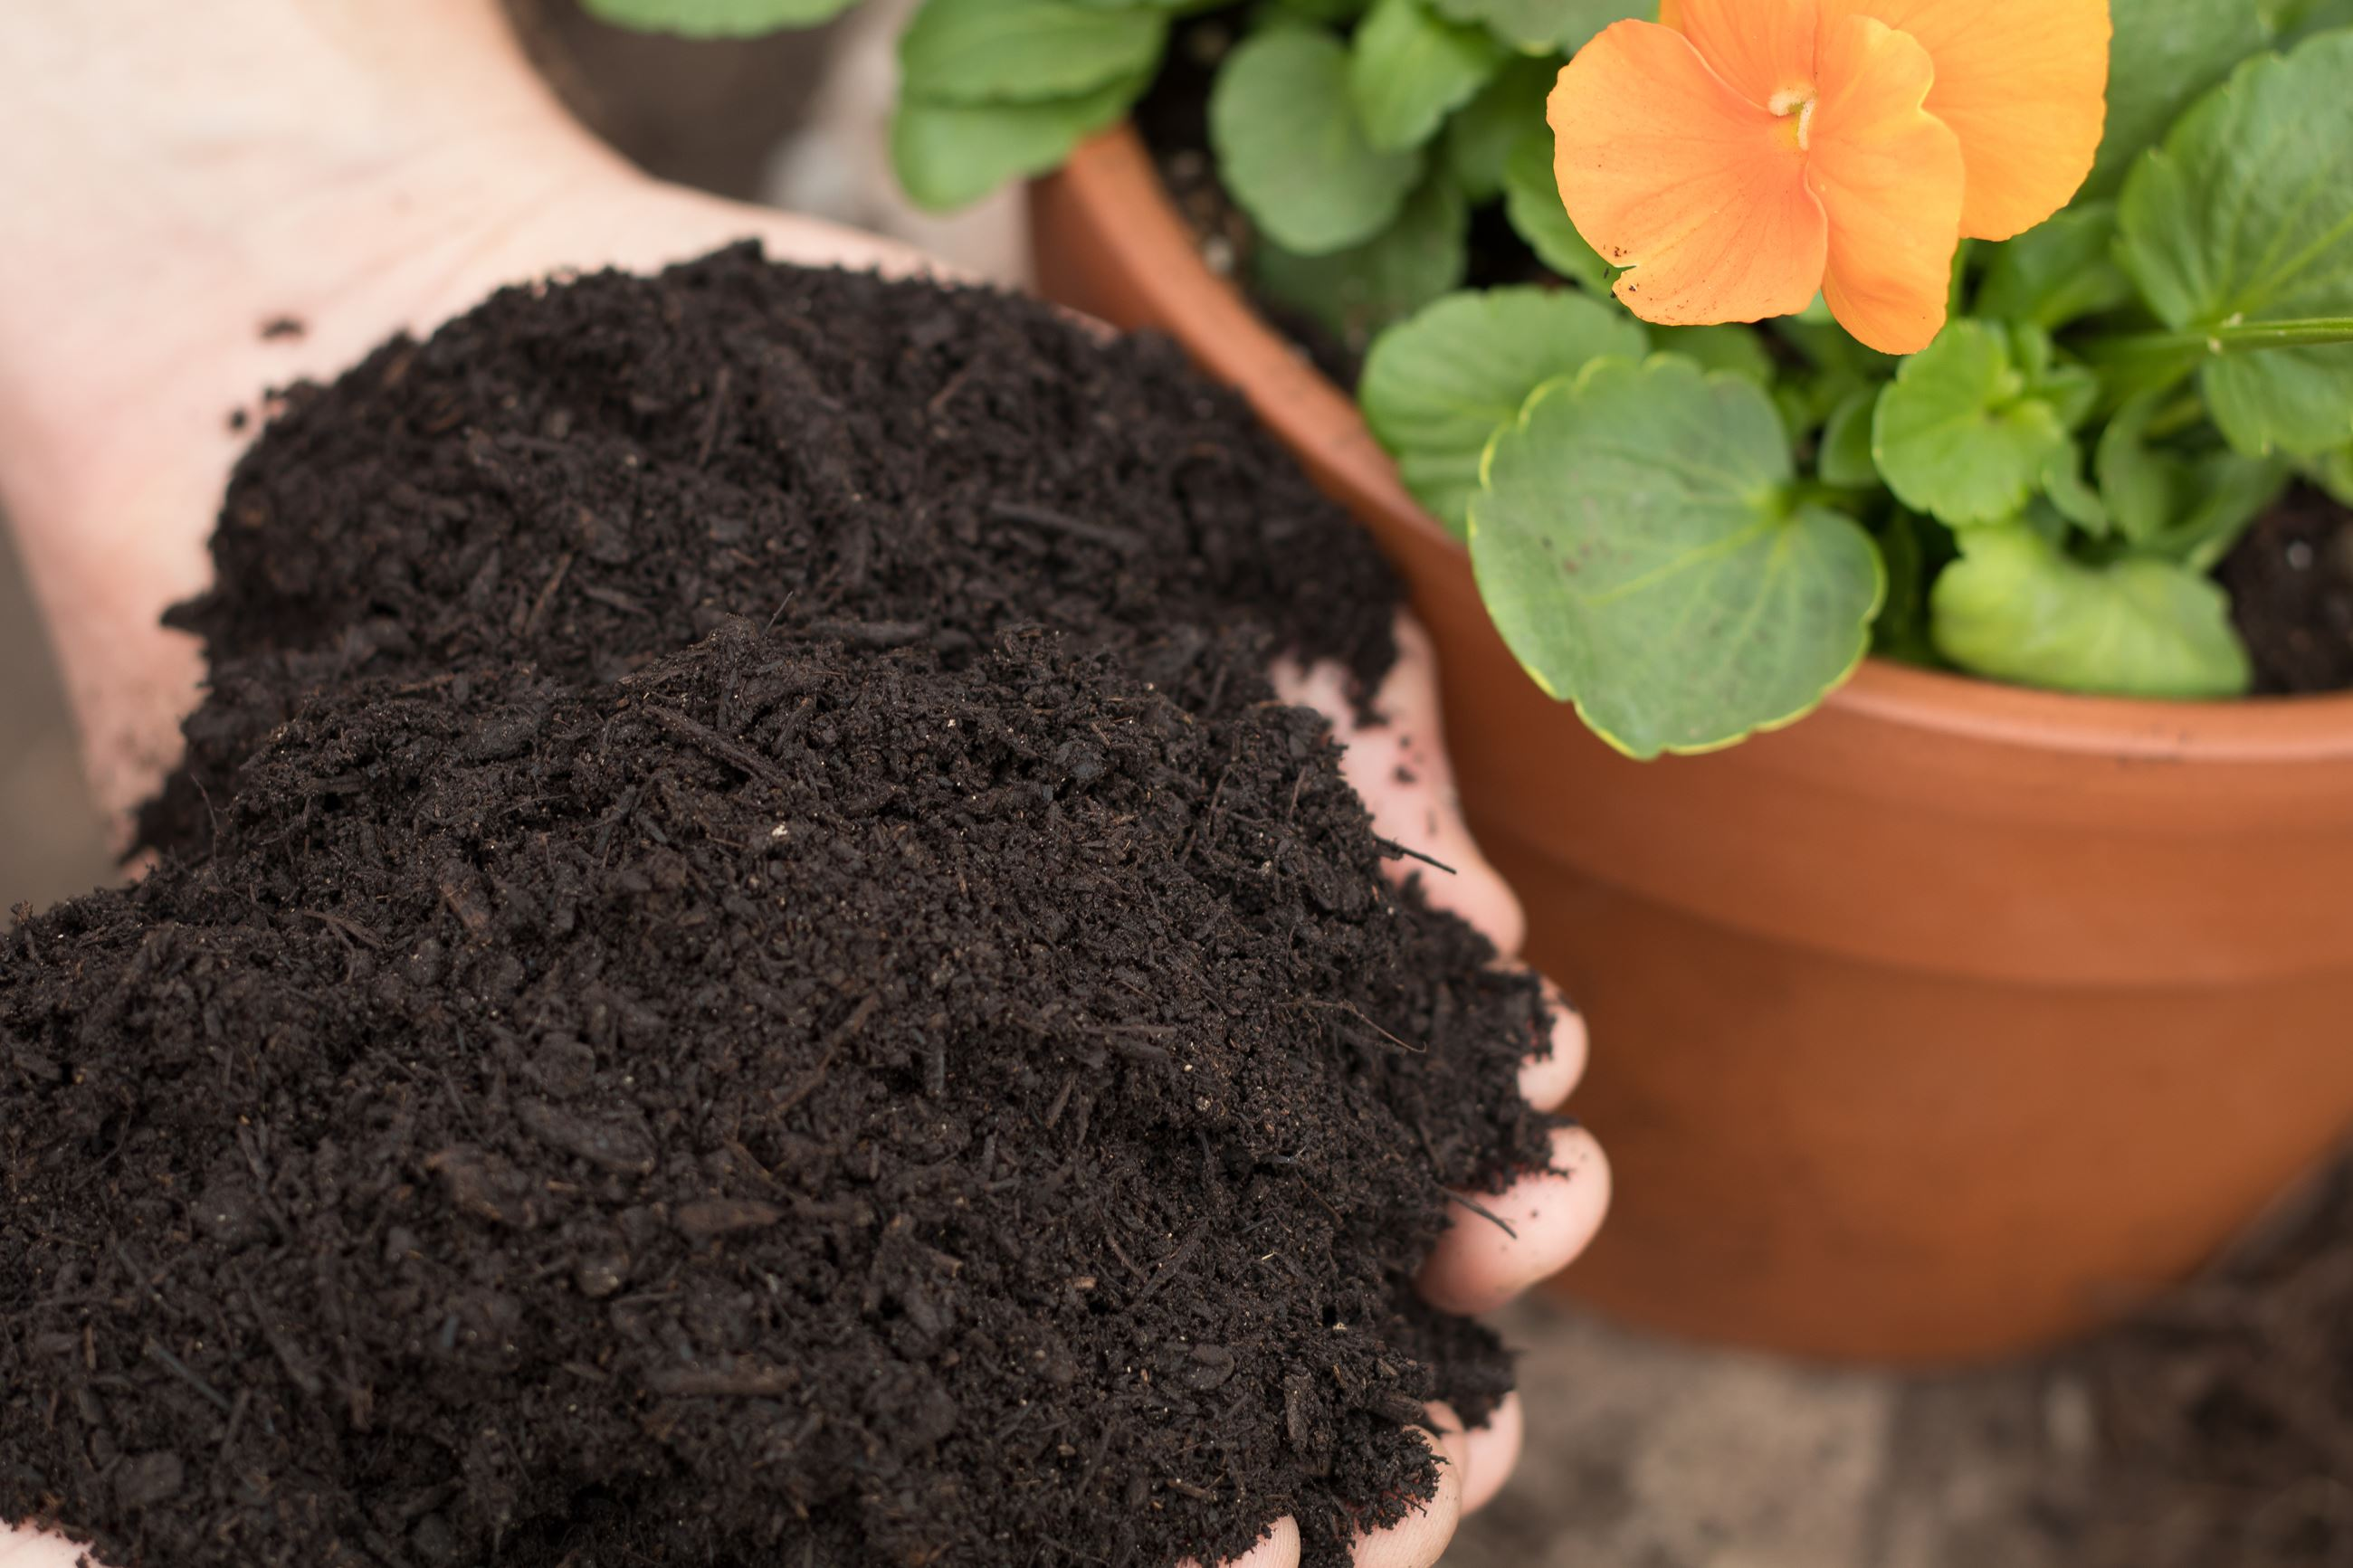 Texas Pure Products Compost Ultra is rich with plant nutrients.